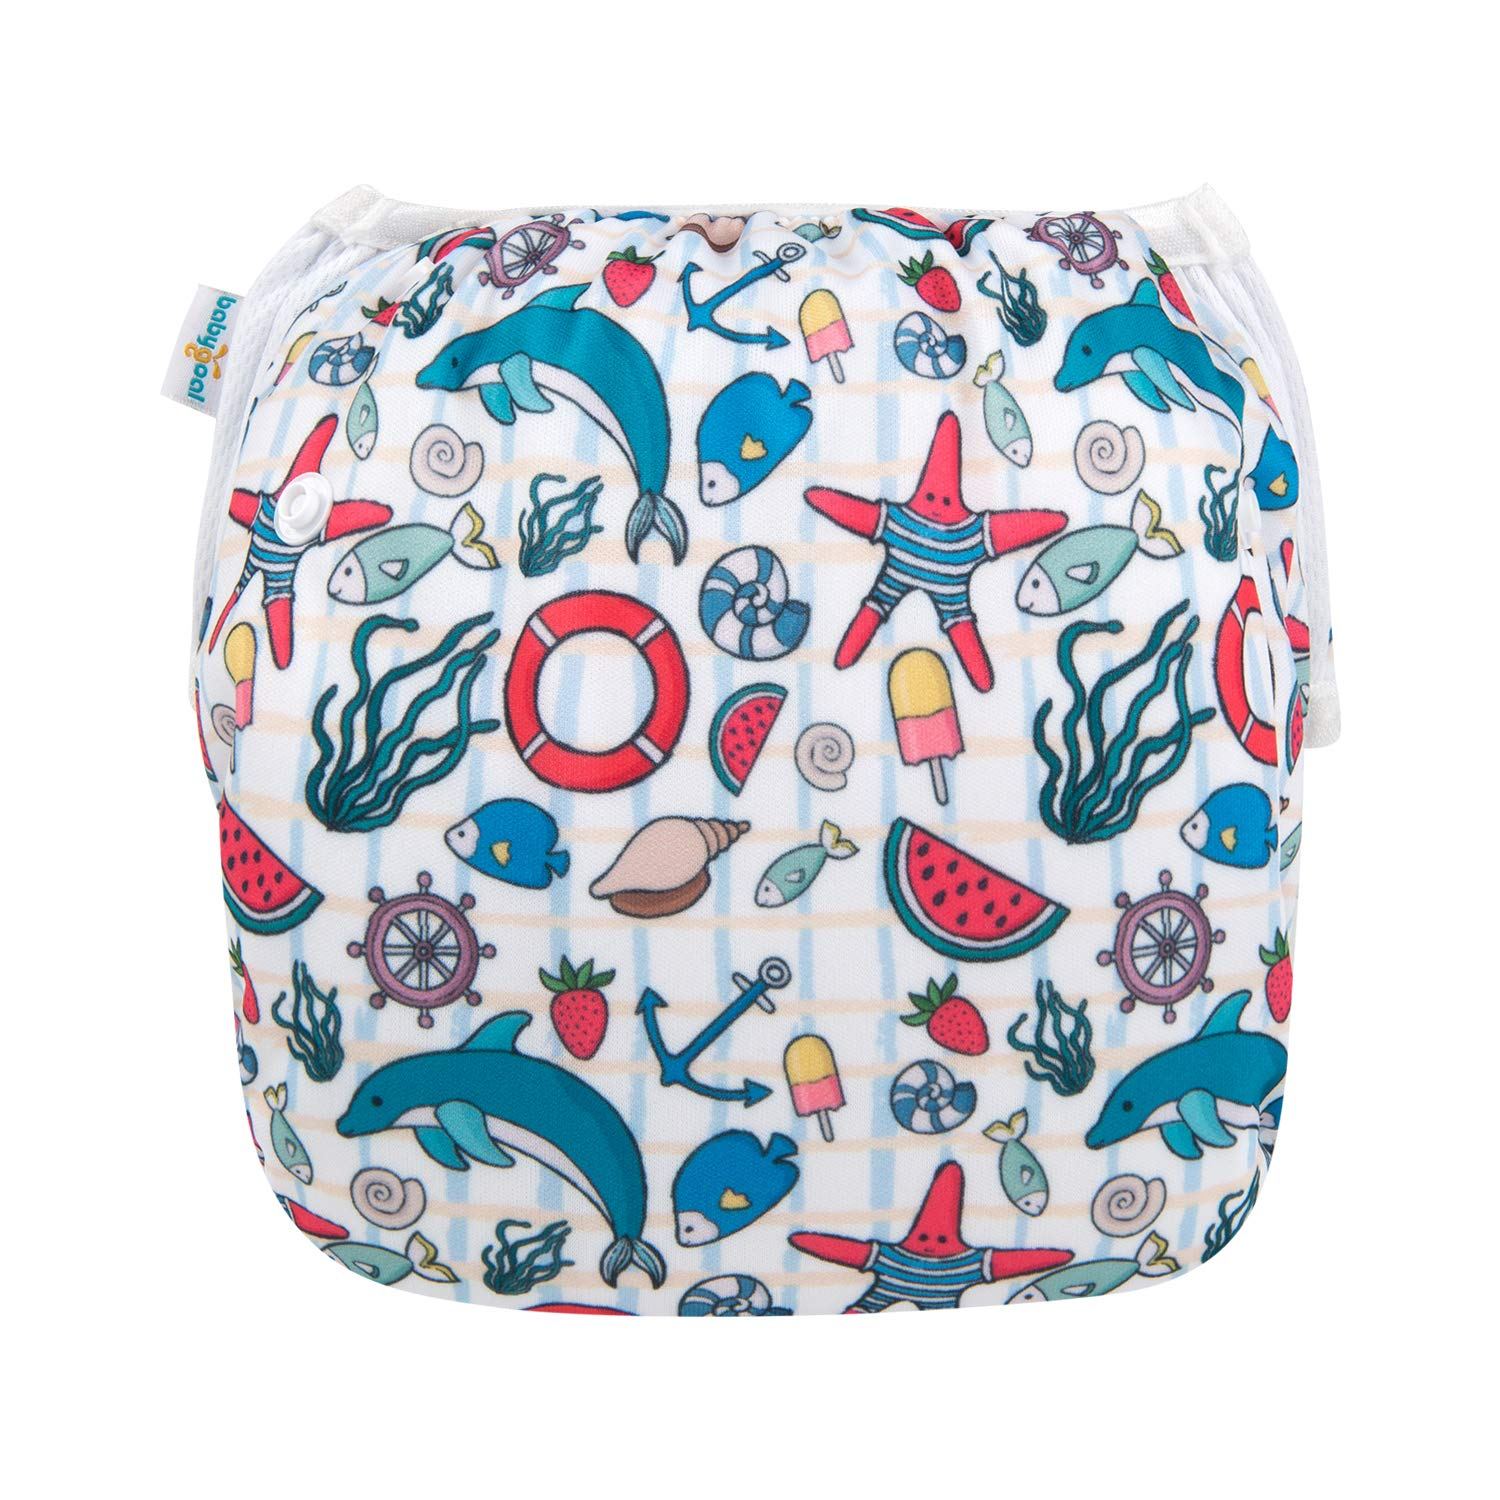 Outdoor Activities and Daily Use Reuseable Washable and Adjustable for Swimming Fit Babies 0-2 Years SW-B25-CA Blue babygoal Baby Swim Diapers